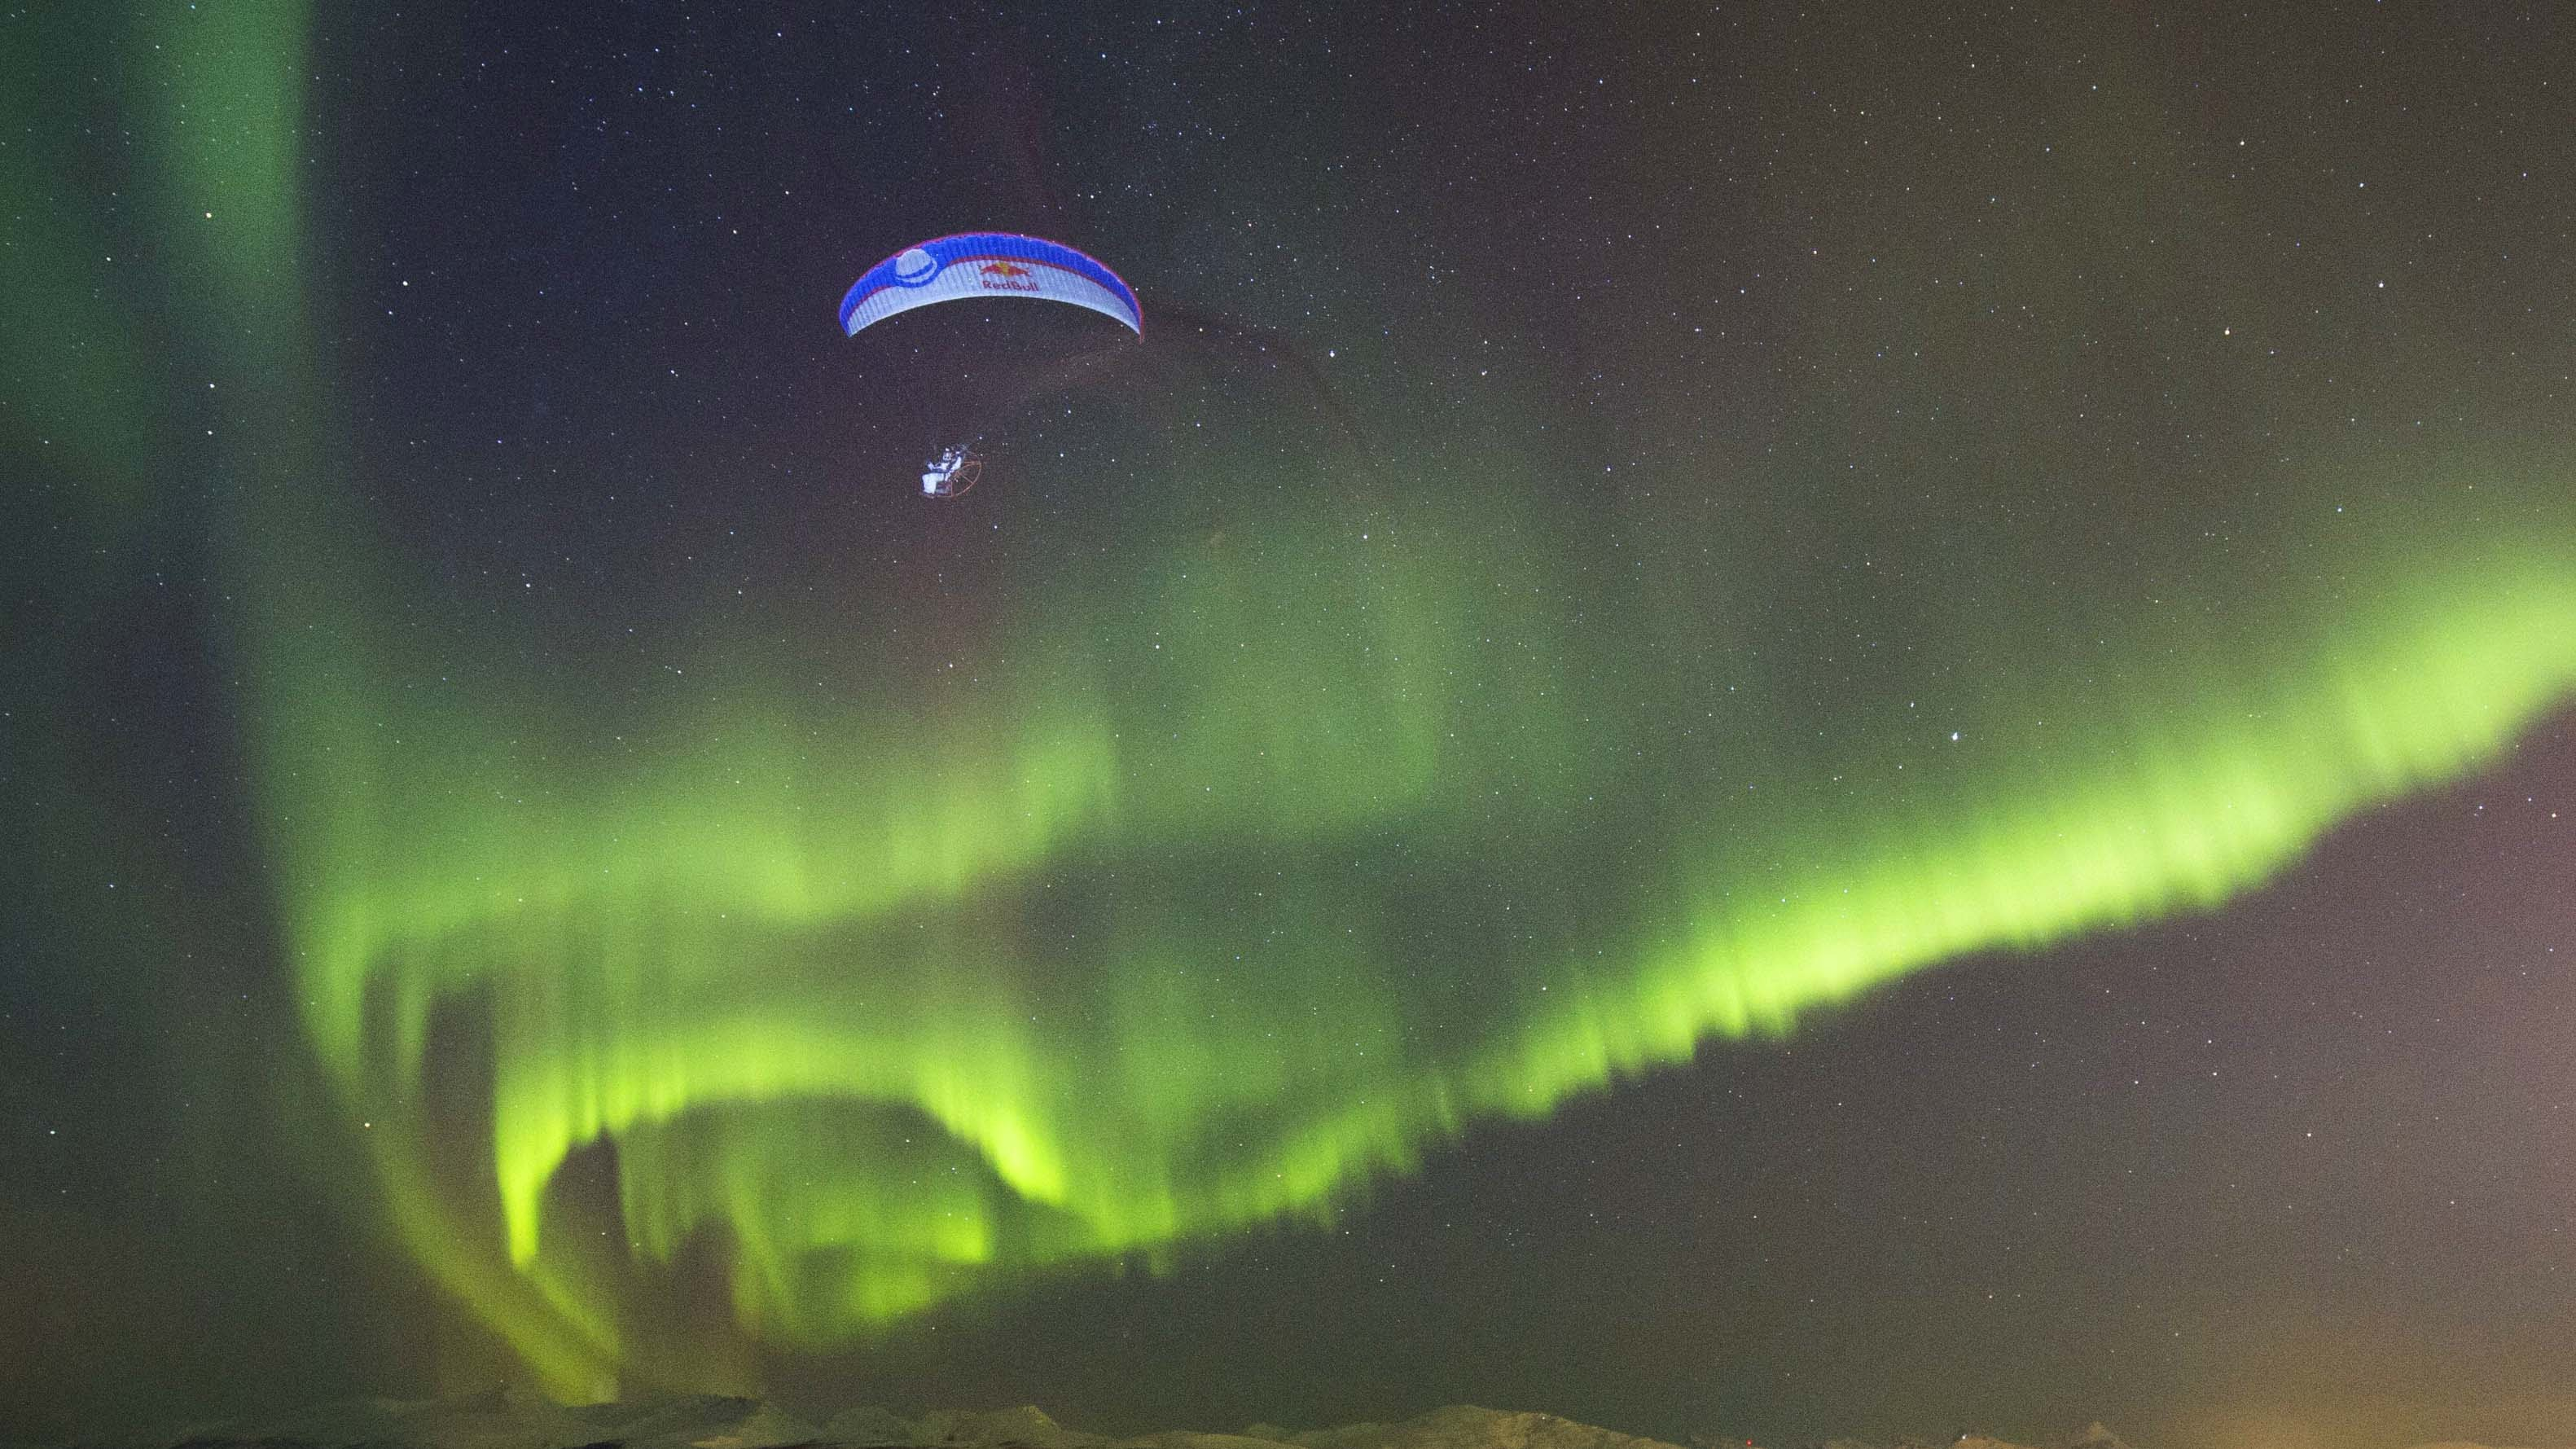 paragliding northern lights, paragliding northern lights video, paragliding northern lights tromso, paragliding northern lights january 2016, paragliding aurora video, Breathtaking Paraglide Flight Through Aurora Borealis | Horacio Llorens, Video caption of video bey Red Bull entitled: paragliding northern lights, paragliding northern lights video, paragliding northern lights tromso, paragliding northern lights january 2016, paragliding aurora video, Breathtaking Paraglide Flight Through Aurora Borealis | Horacio Llorens